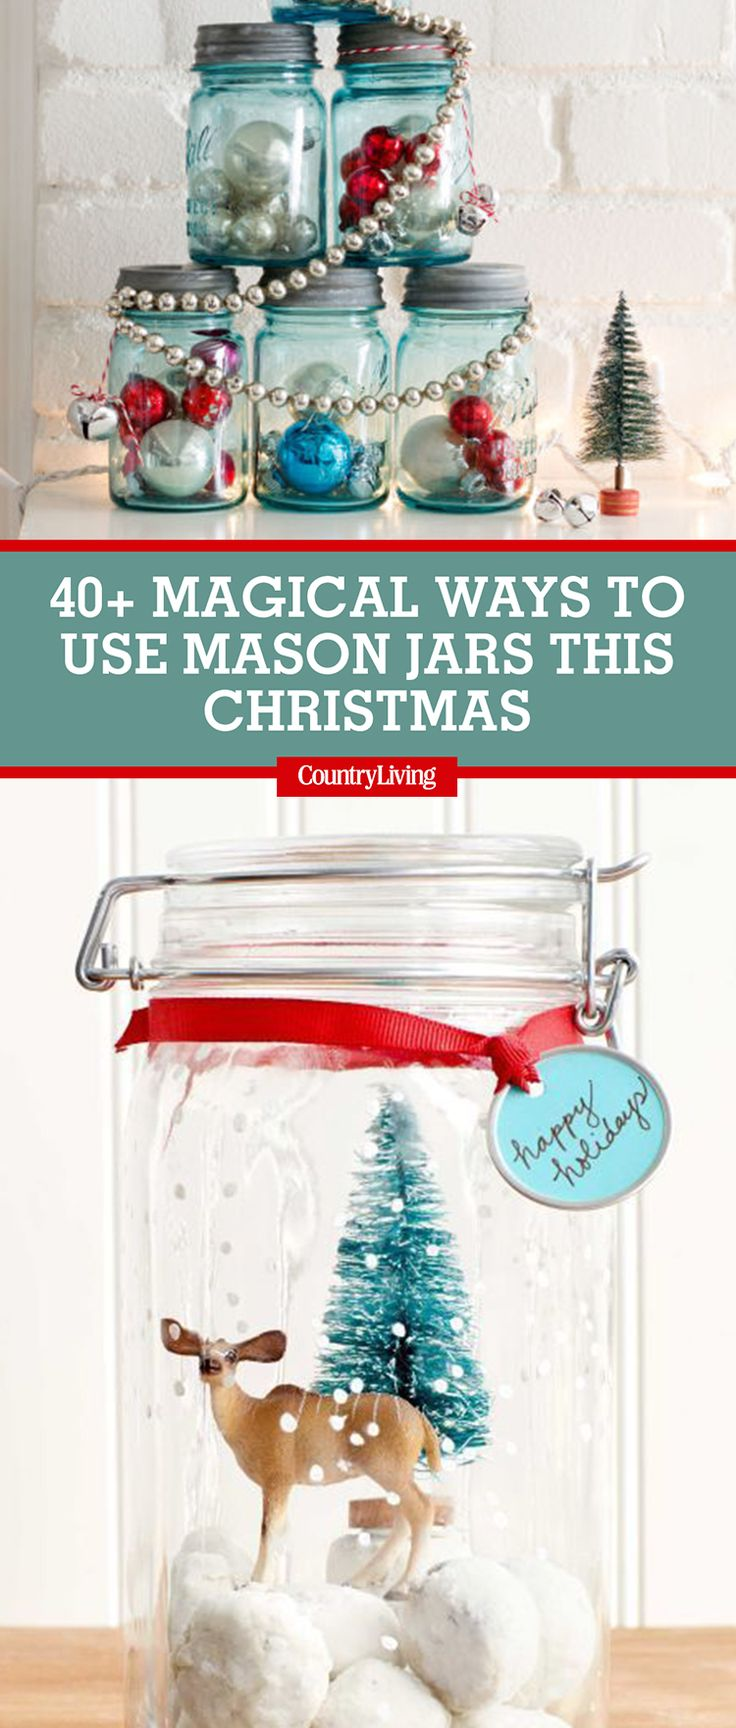 These festive ideas will fulfill all your Christmas decorating needs.